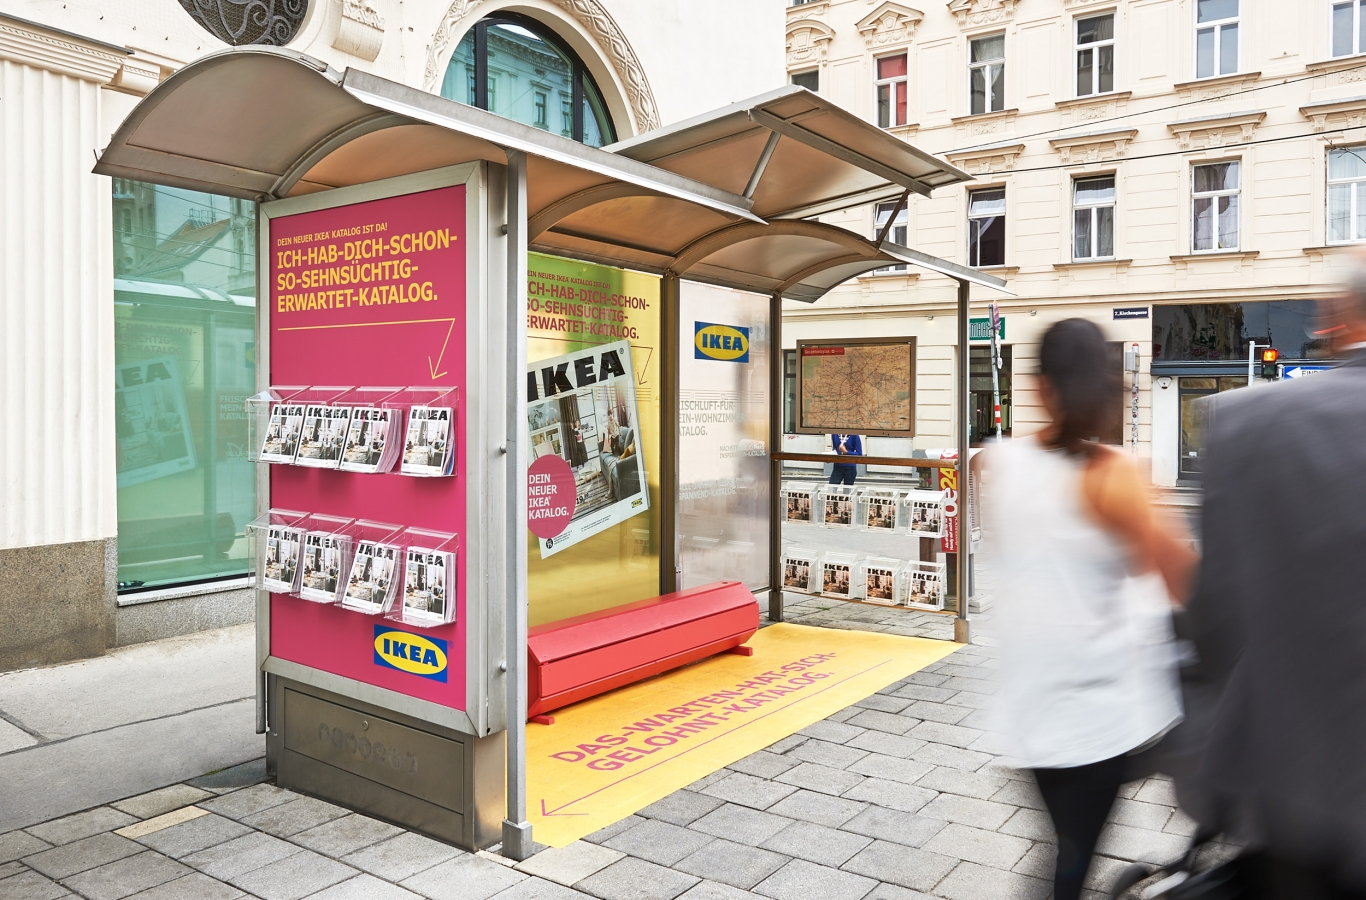 The new IKEA catalogue is here: At Gewista bus and tram